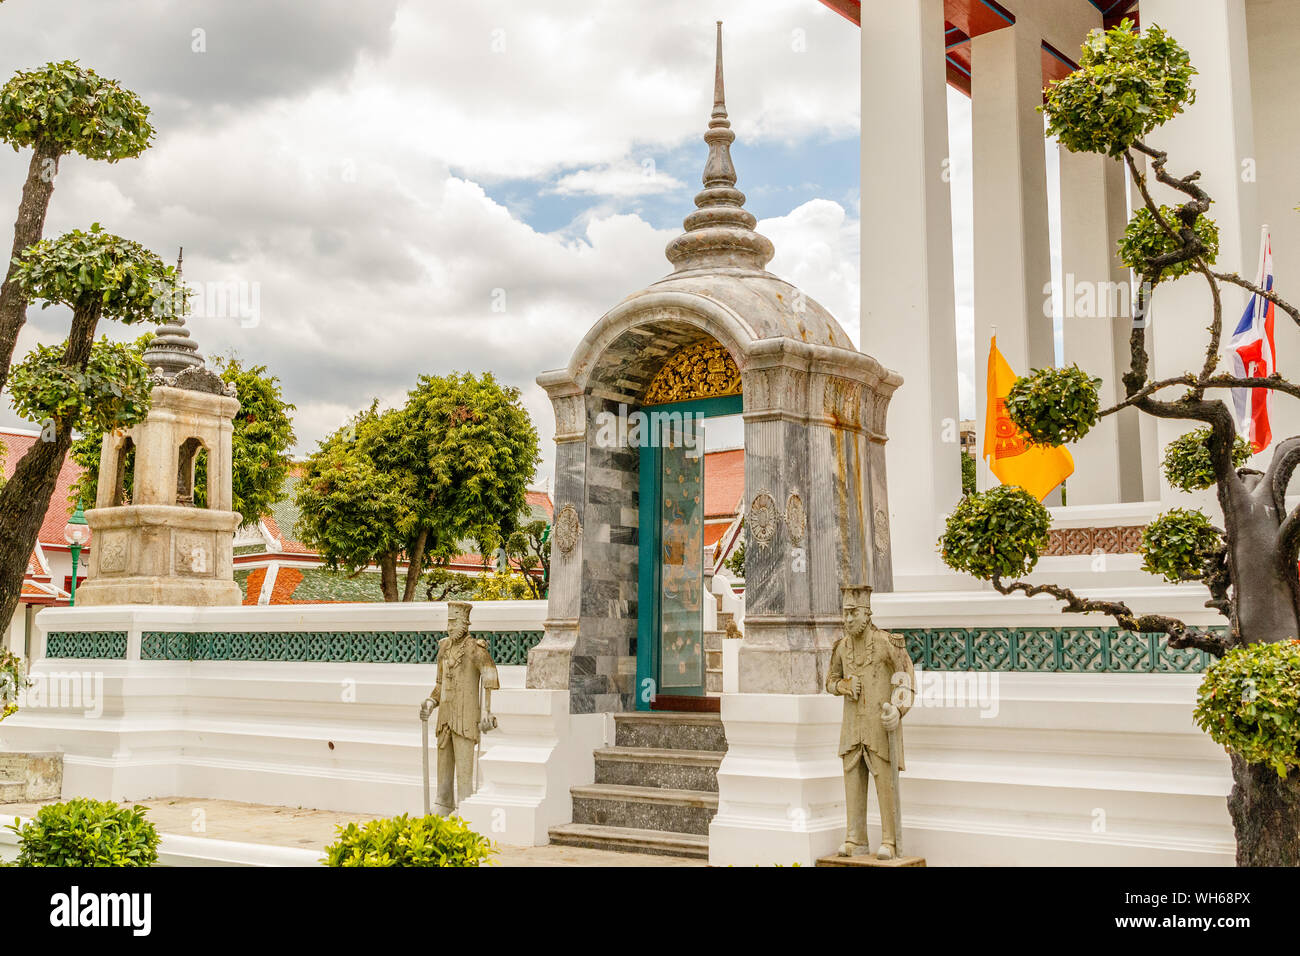 Statues at the entrance of Wat Suthat Thepwararam, old royal Buddhist temple (wat) in Bangkok, Thailand. Stock Photo